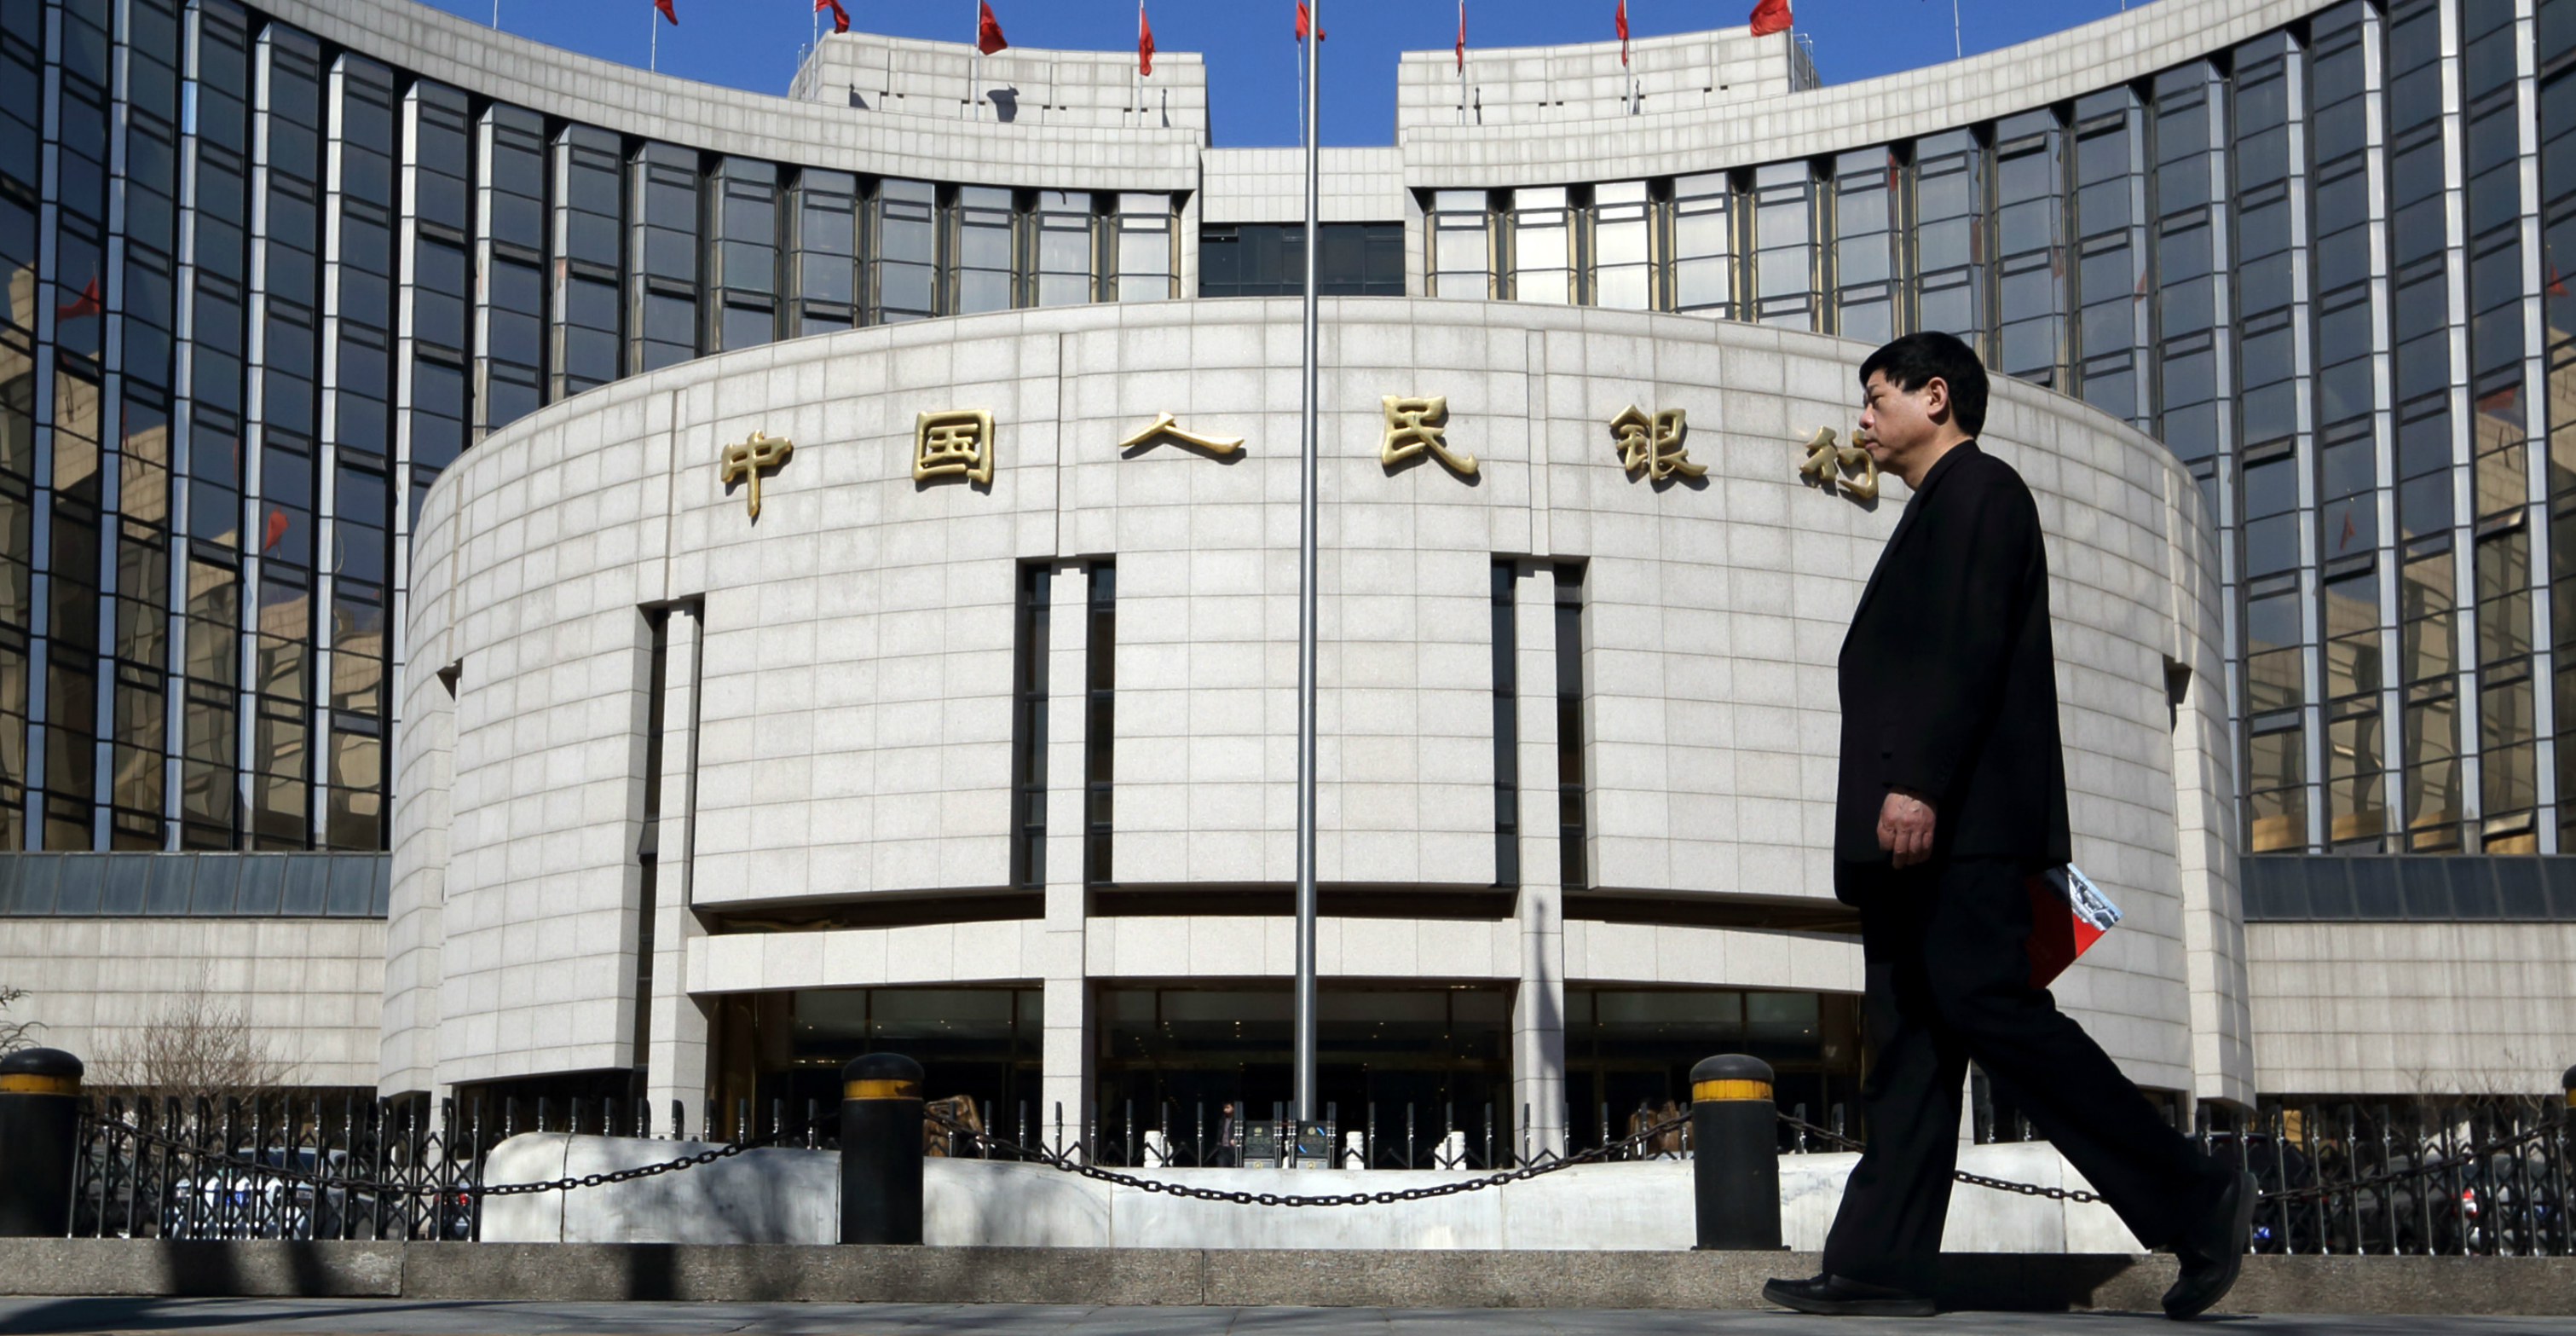 The People's Bank of China has cut the reserve requirement ratio eight times since early 2018 to help shore up the cooling economy. Photo: Bloomberg